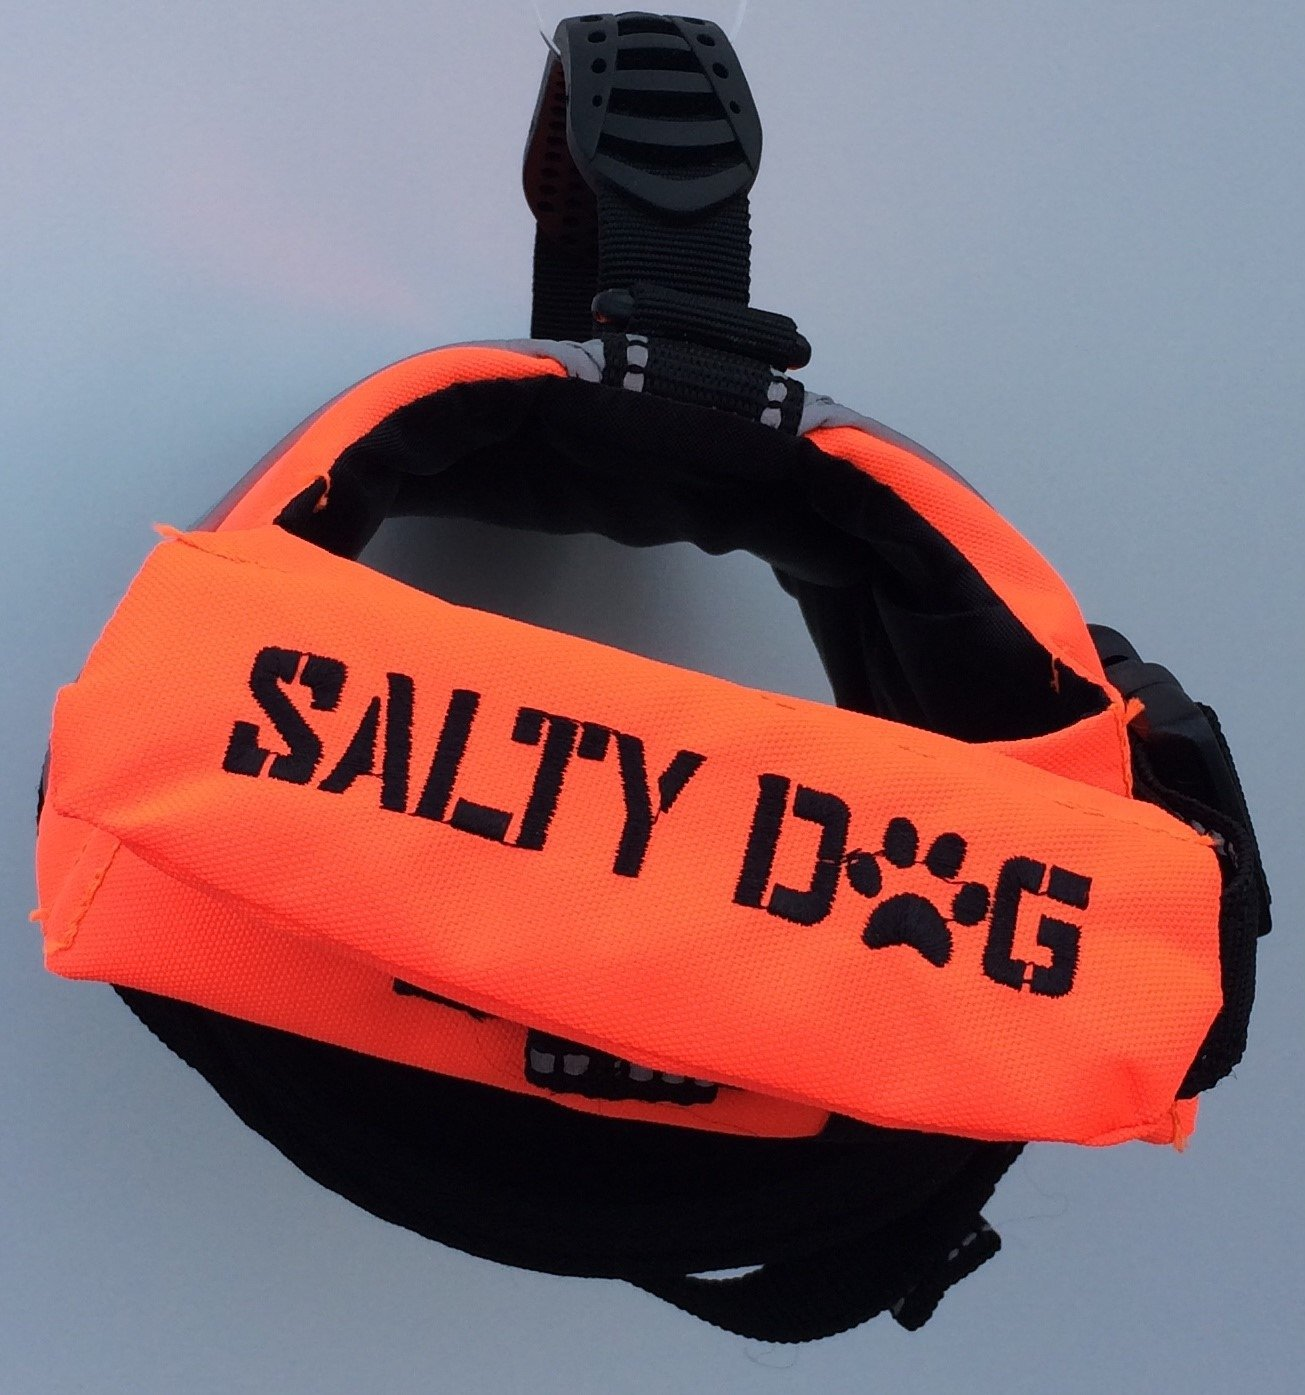 Petego Salty Dog Pet Life Vest, XX-Small, Fits Girth 13 to 17-Inch, Orange